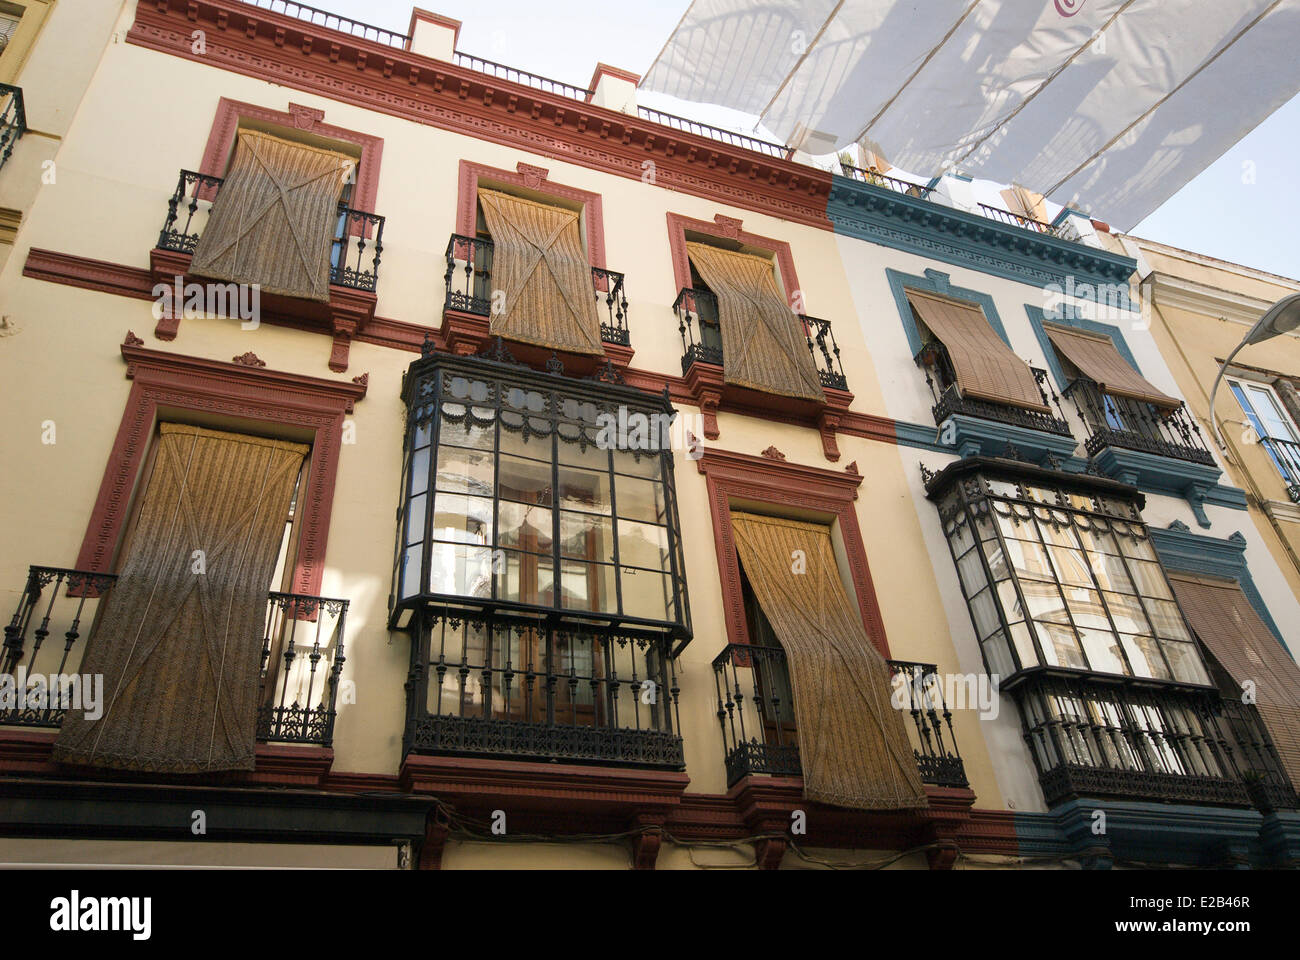 Spain Andalucia Seville Wrought Iron Balconies And Awnings Alfa